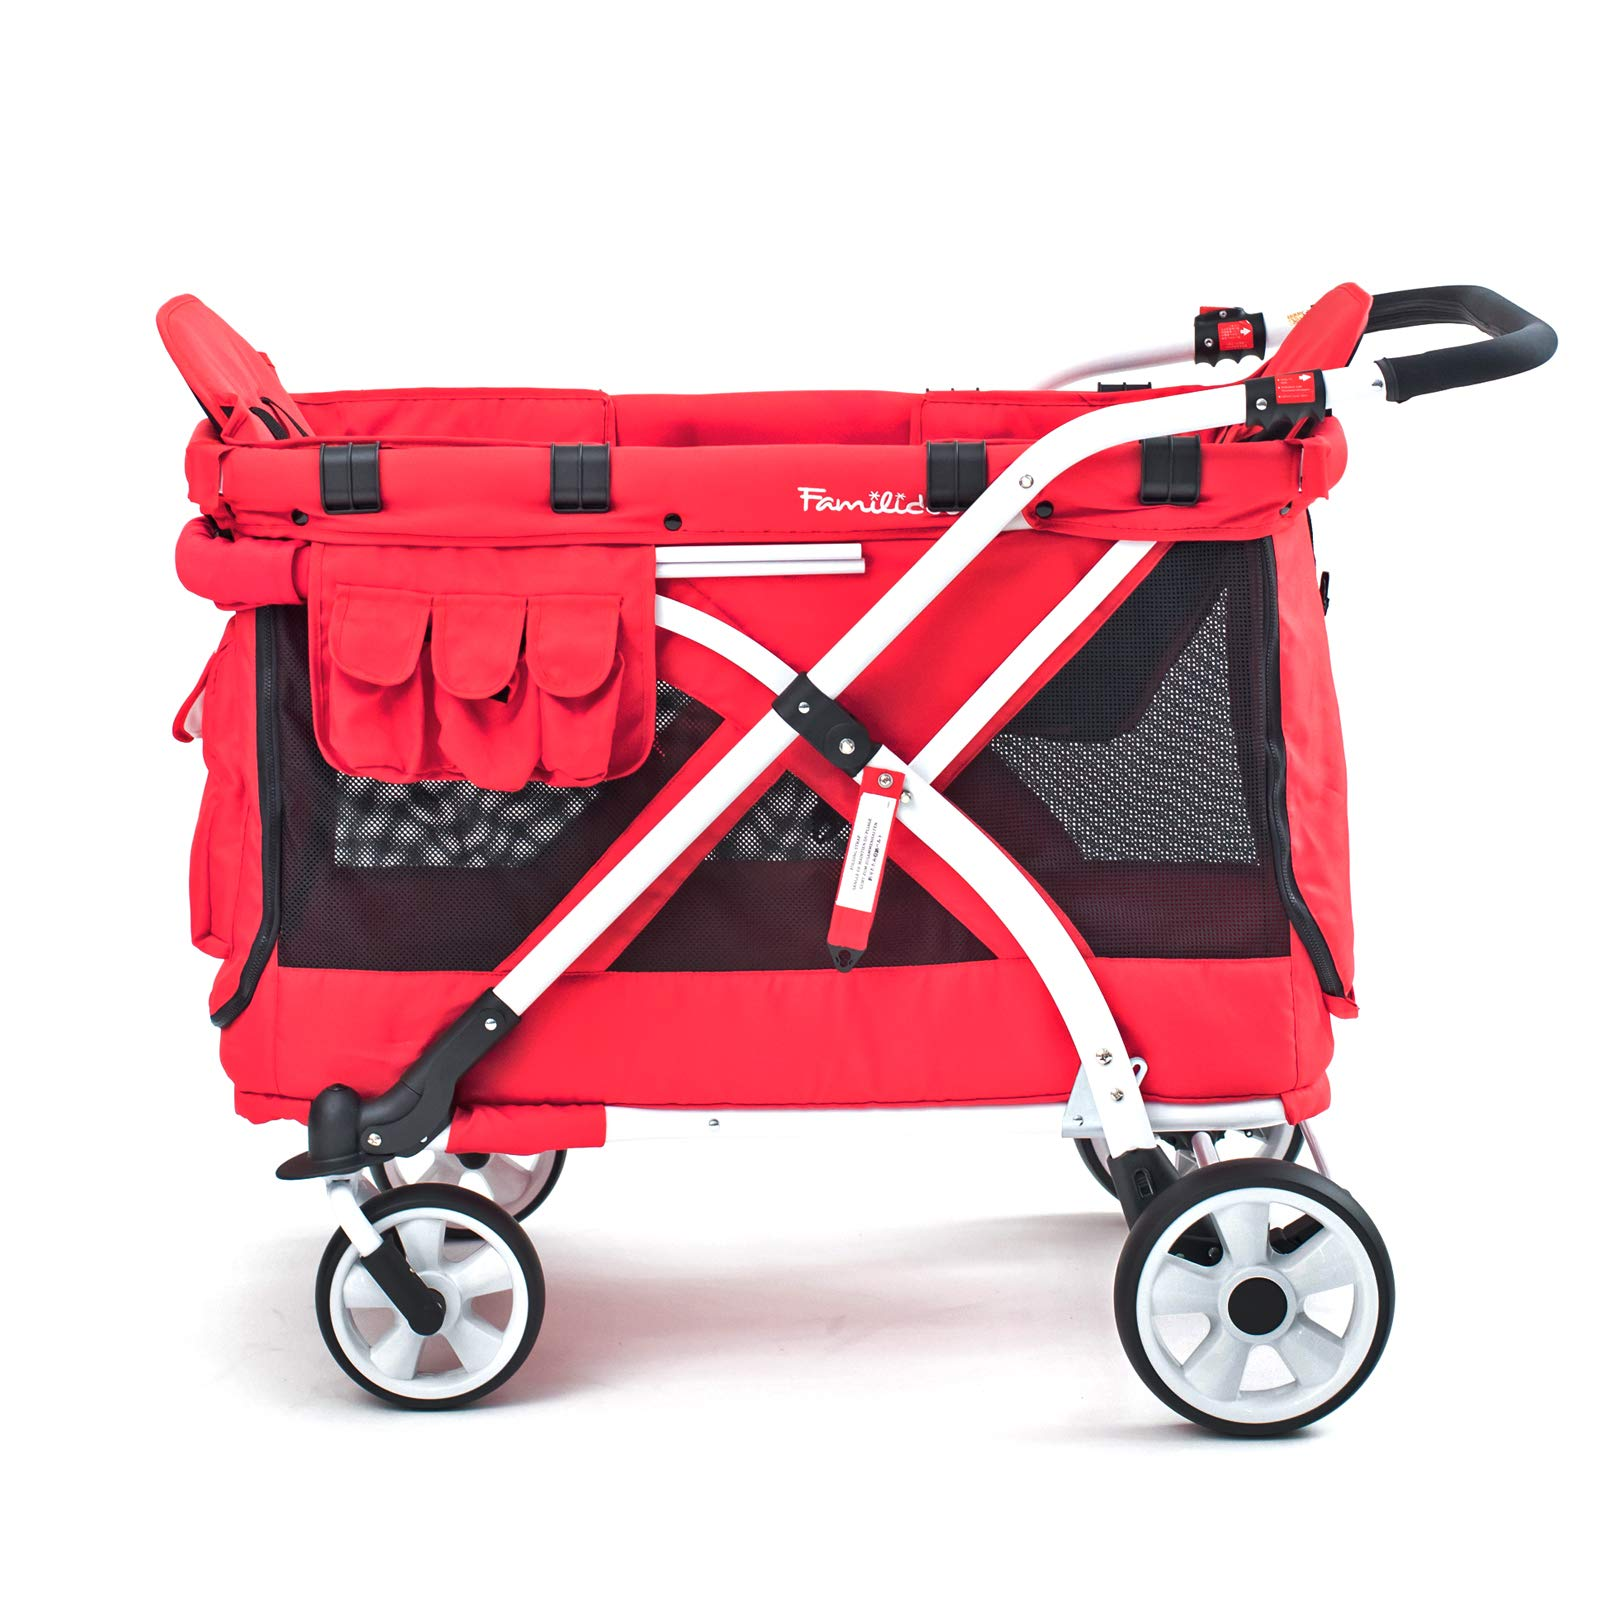 Familidoo Multi-Purpose 6 in 1 Large Twin Size Toddler Baby Folding Stroller Chariot Wagon, Red by FAMILIDOO (Image #8)